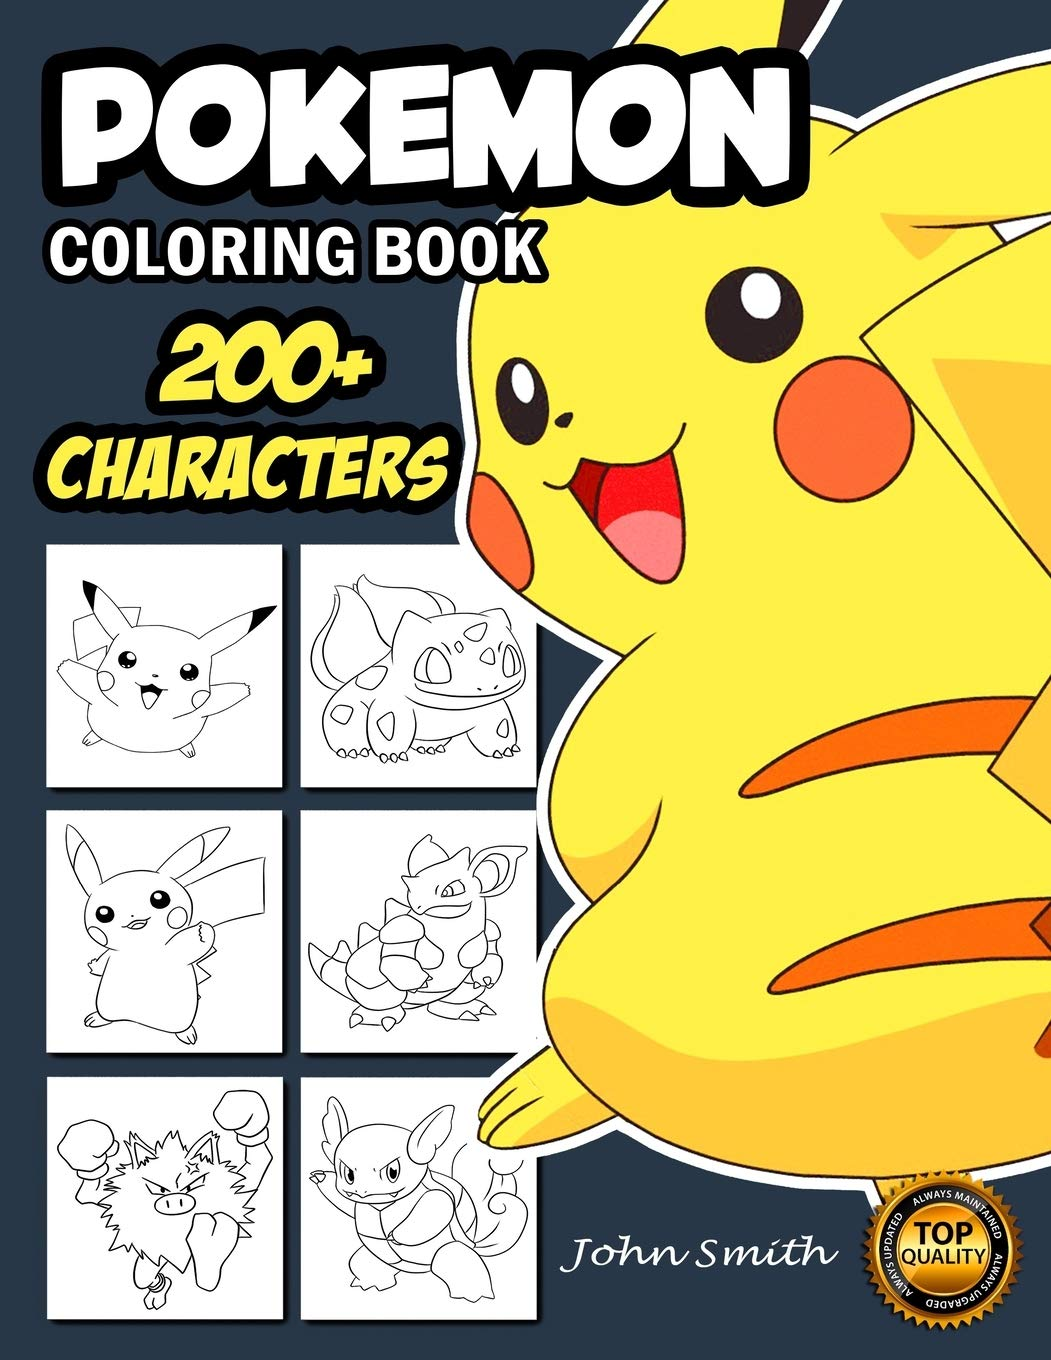 Pokemon Squirtle Coloring Pages - GetColoringPages.com | 1360x1051